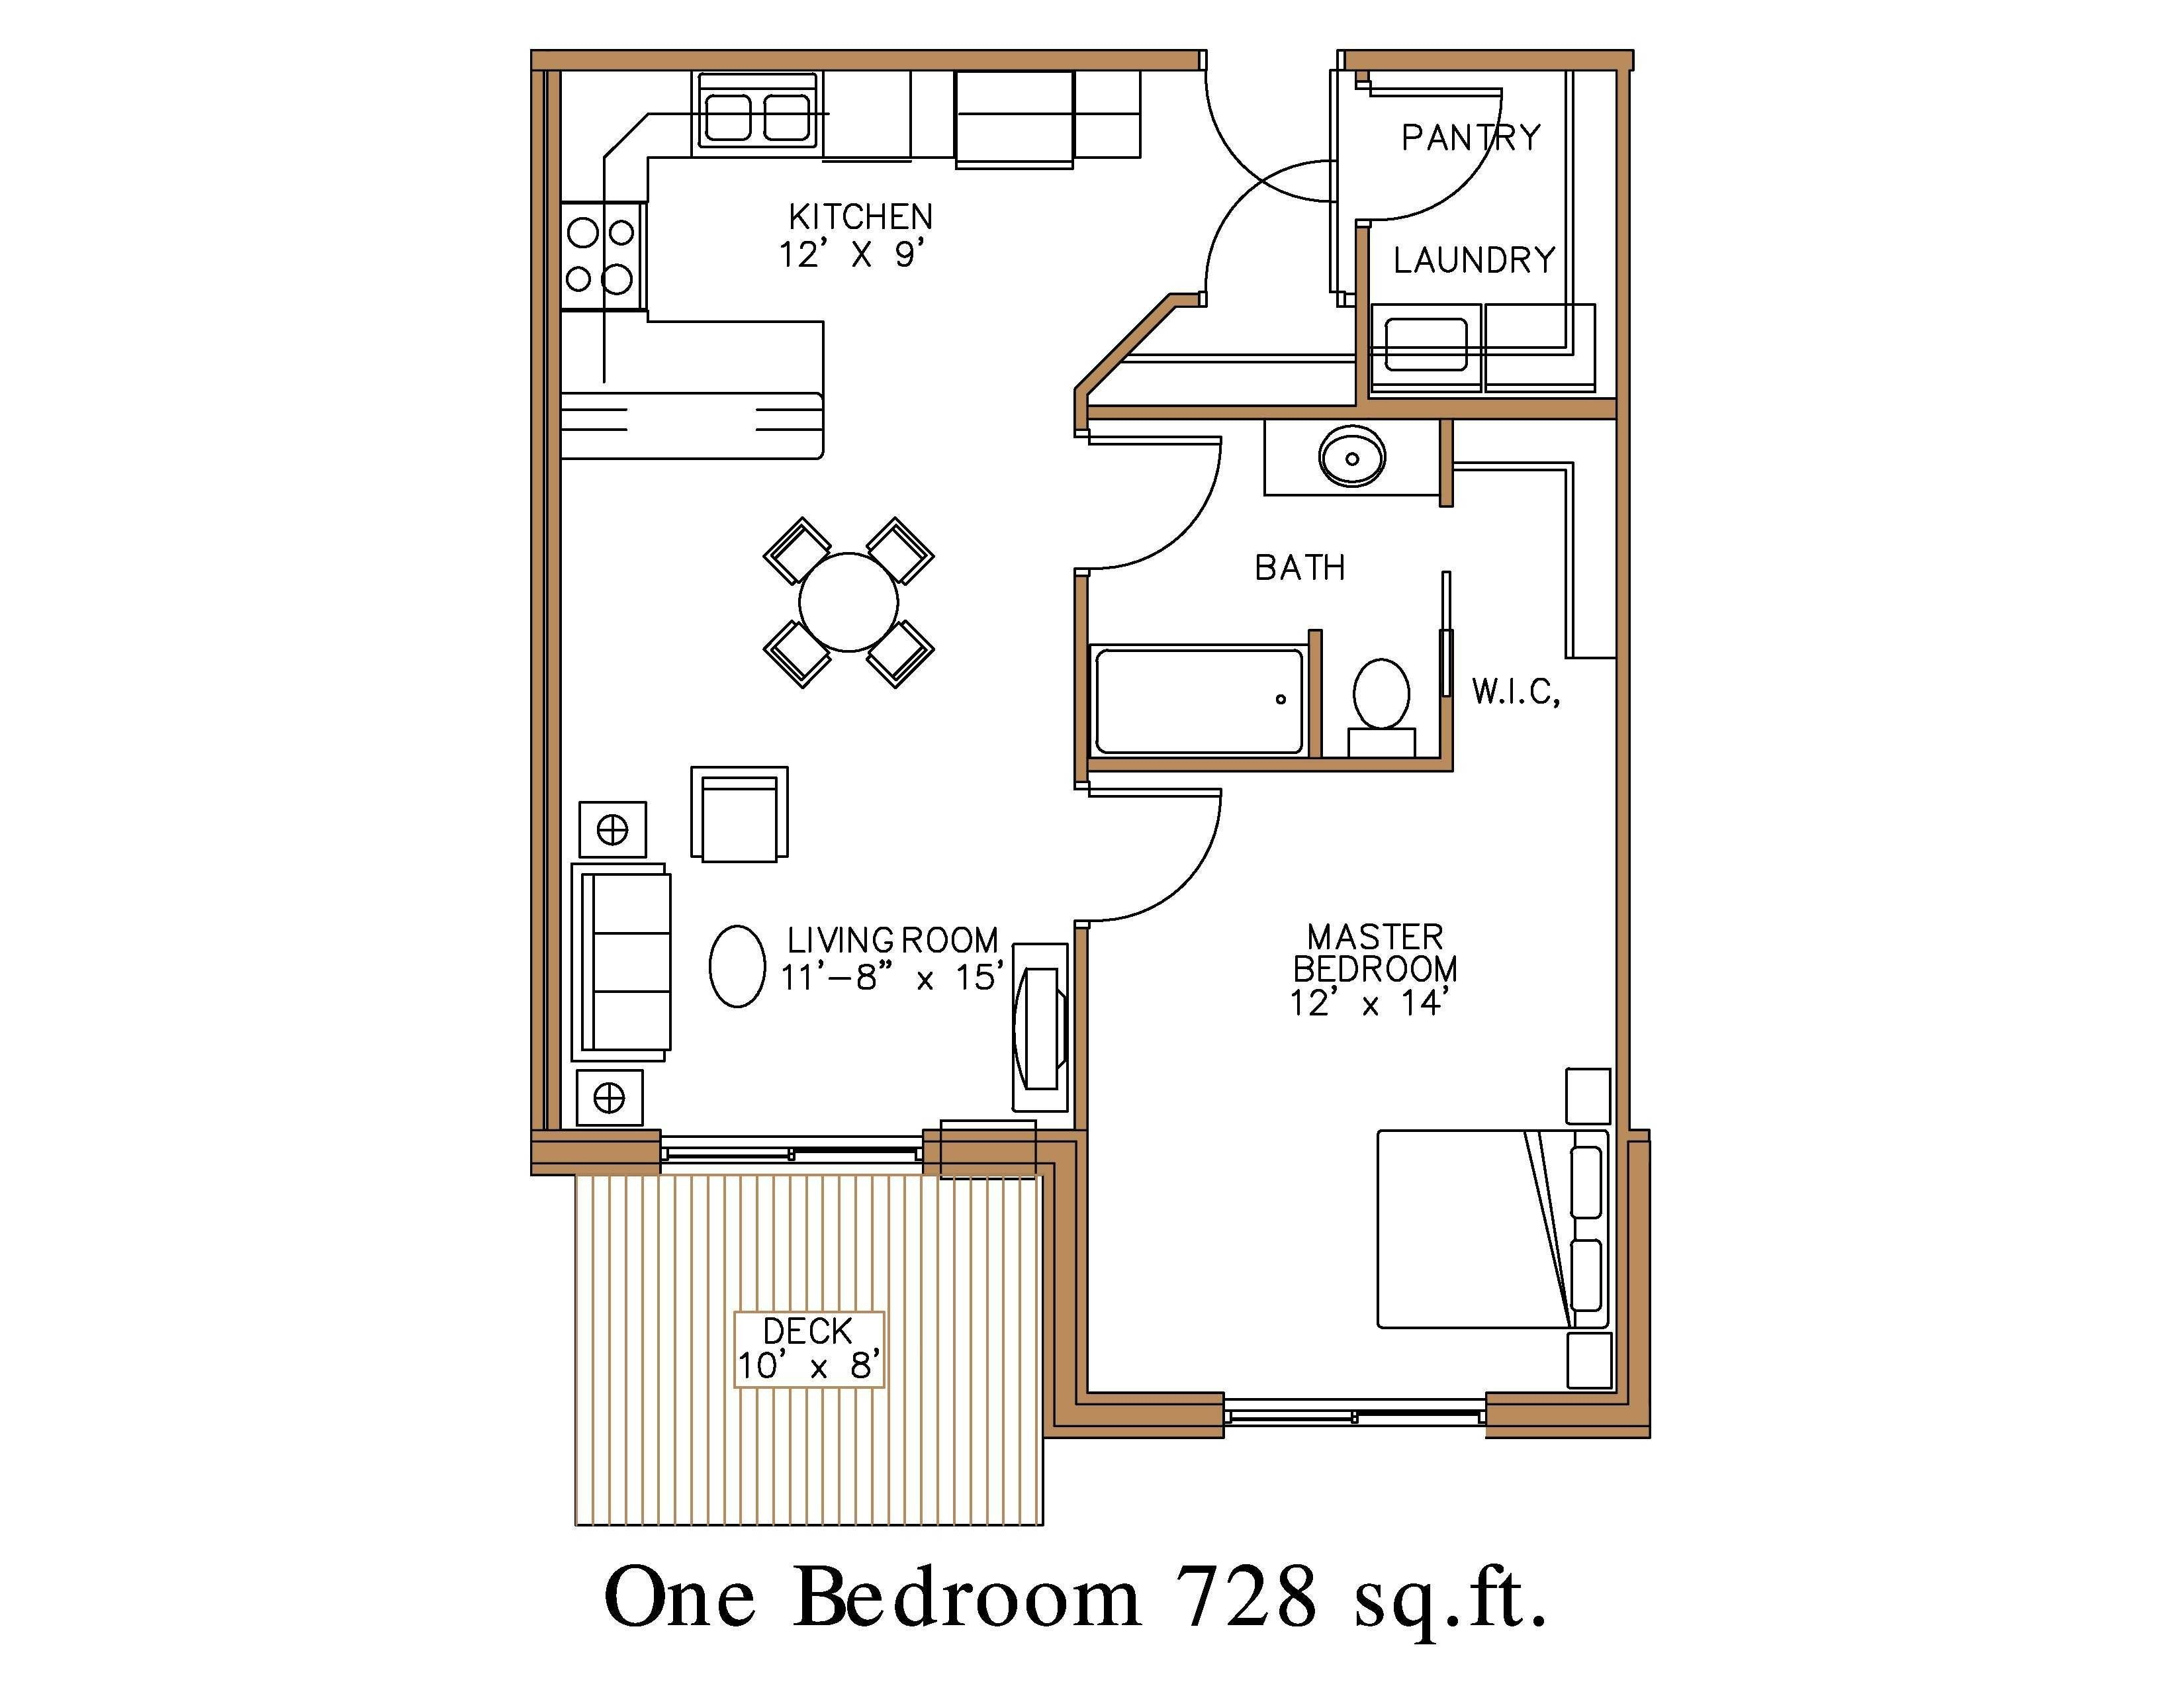 Great Photo Of 1 Bedroom Apartment Floor Plan With Images Open